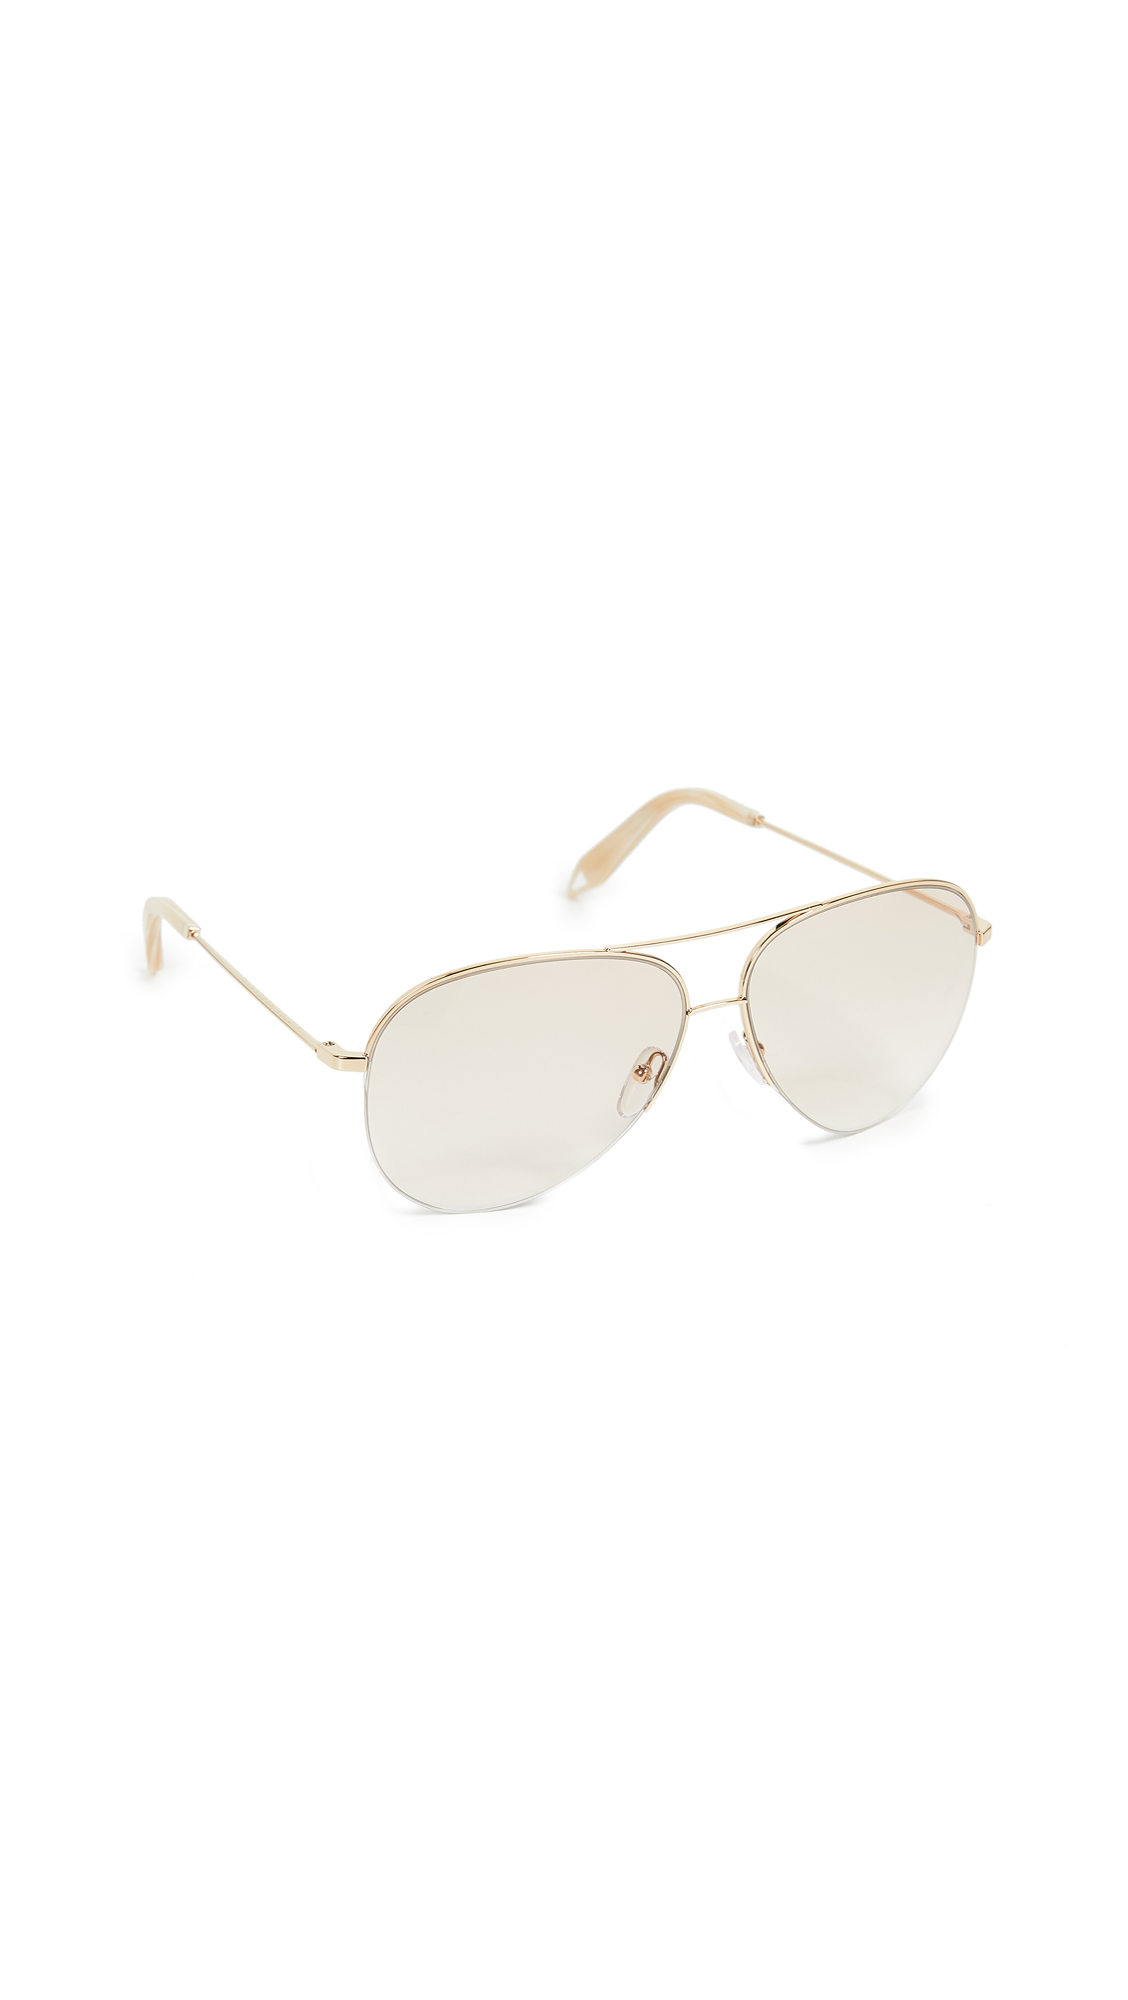 Victoria Beckham Classic Victoria Sunglasses - Grad Nude And Blonde Gold